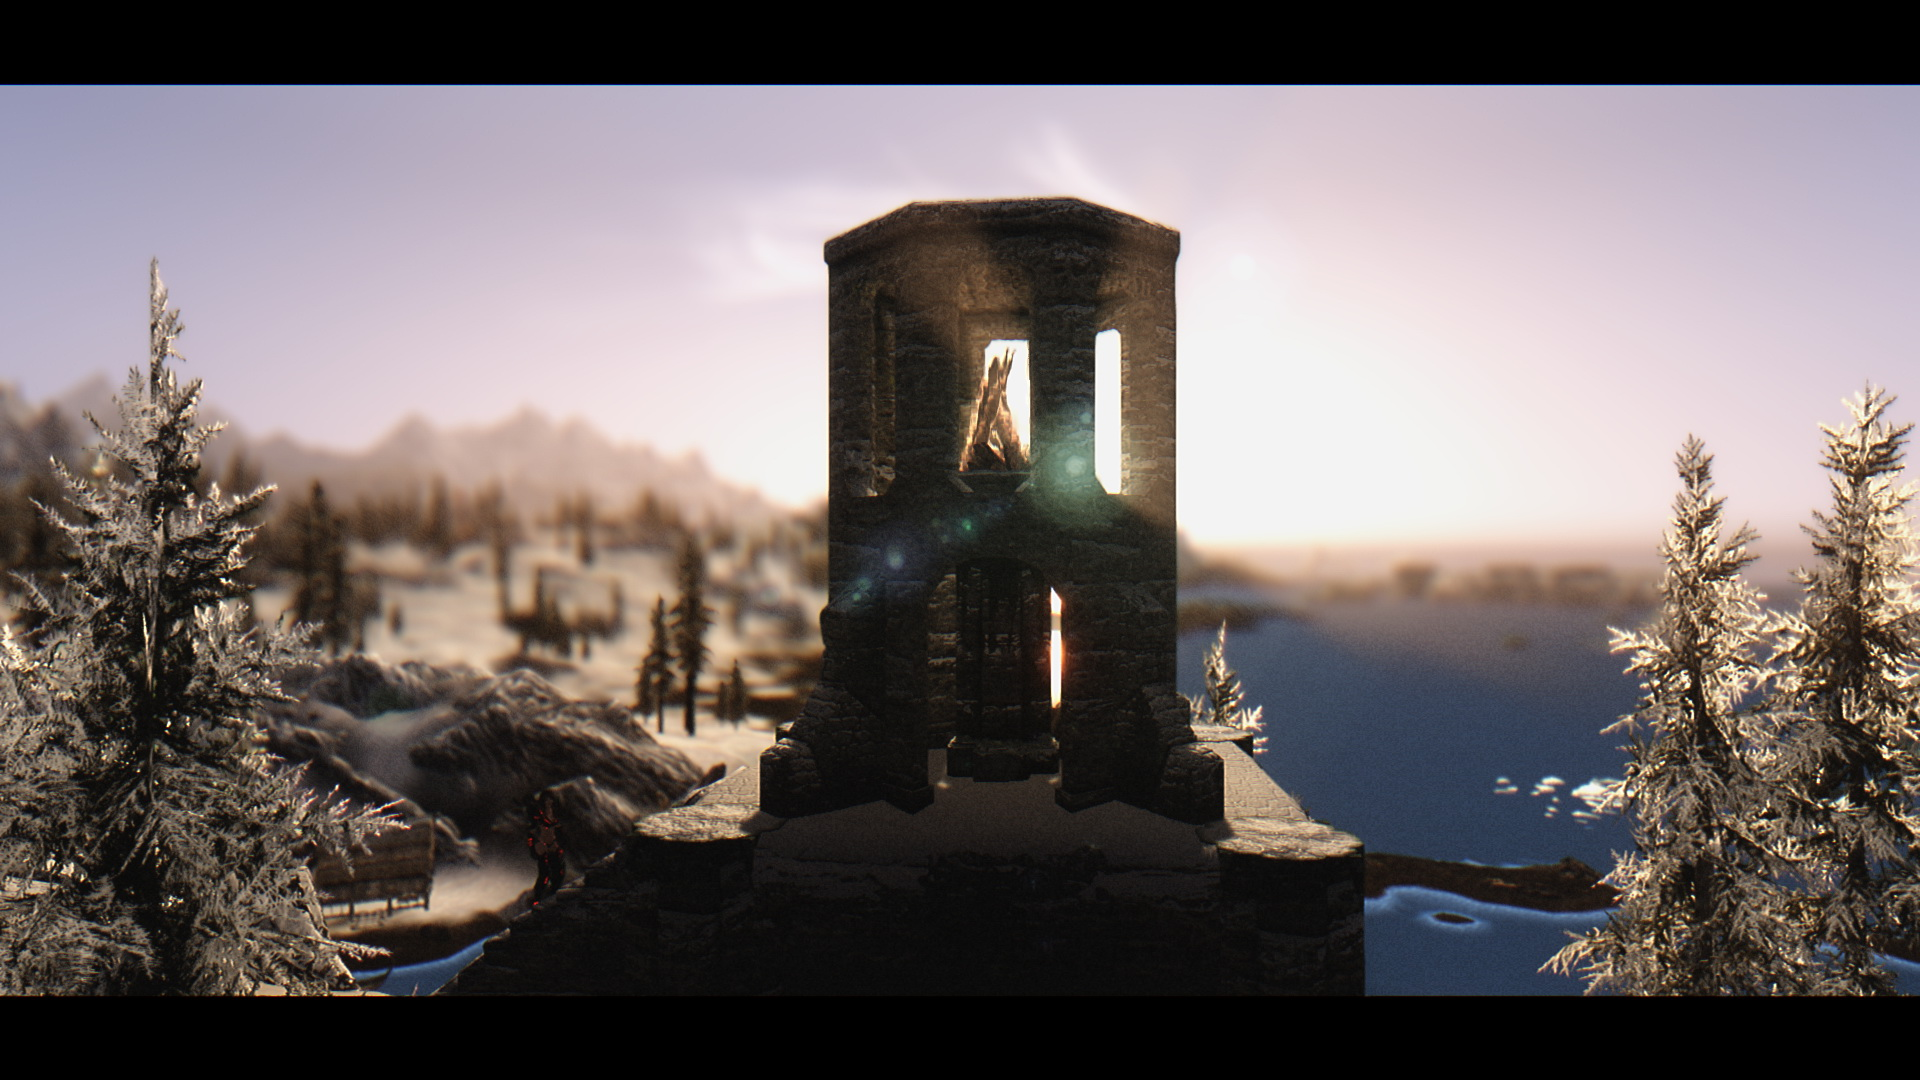 Therion ENB via Nocturna